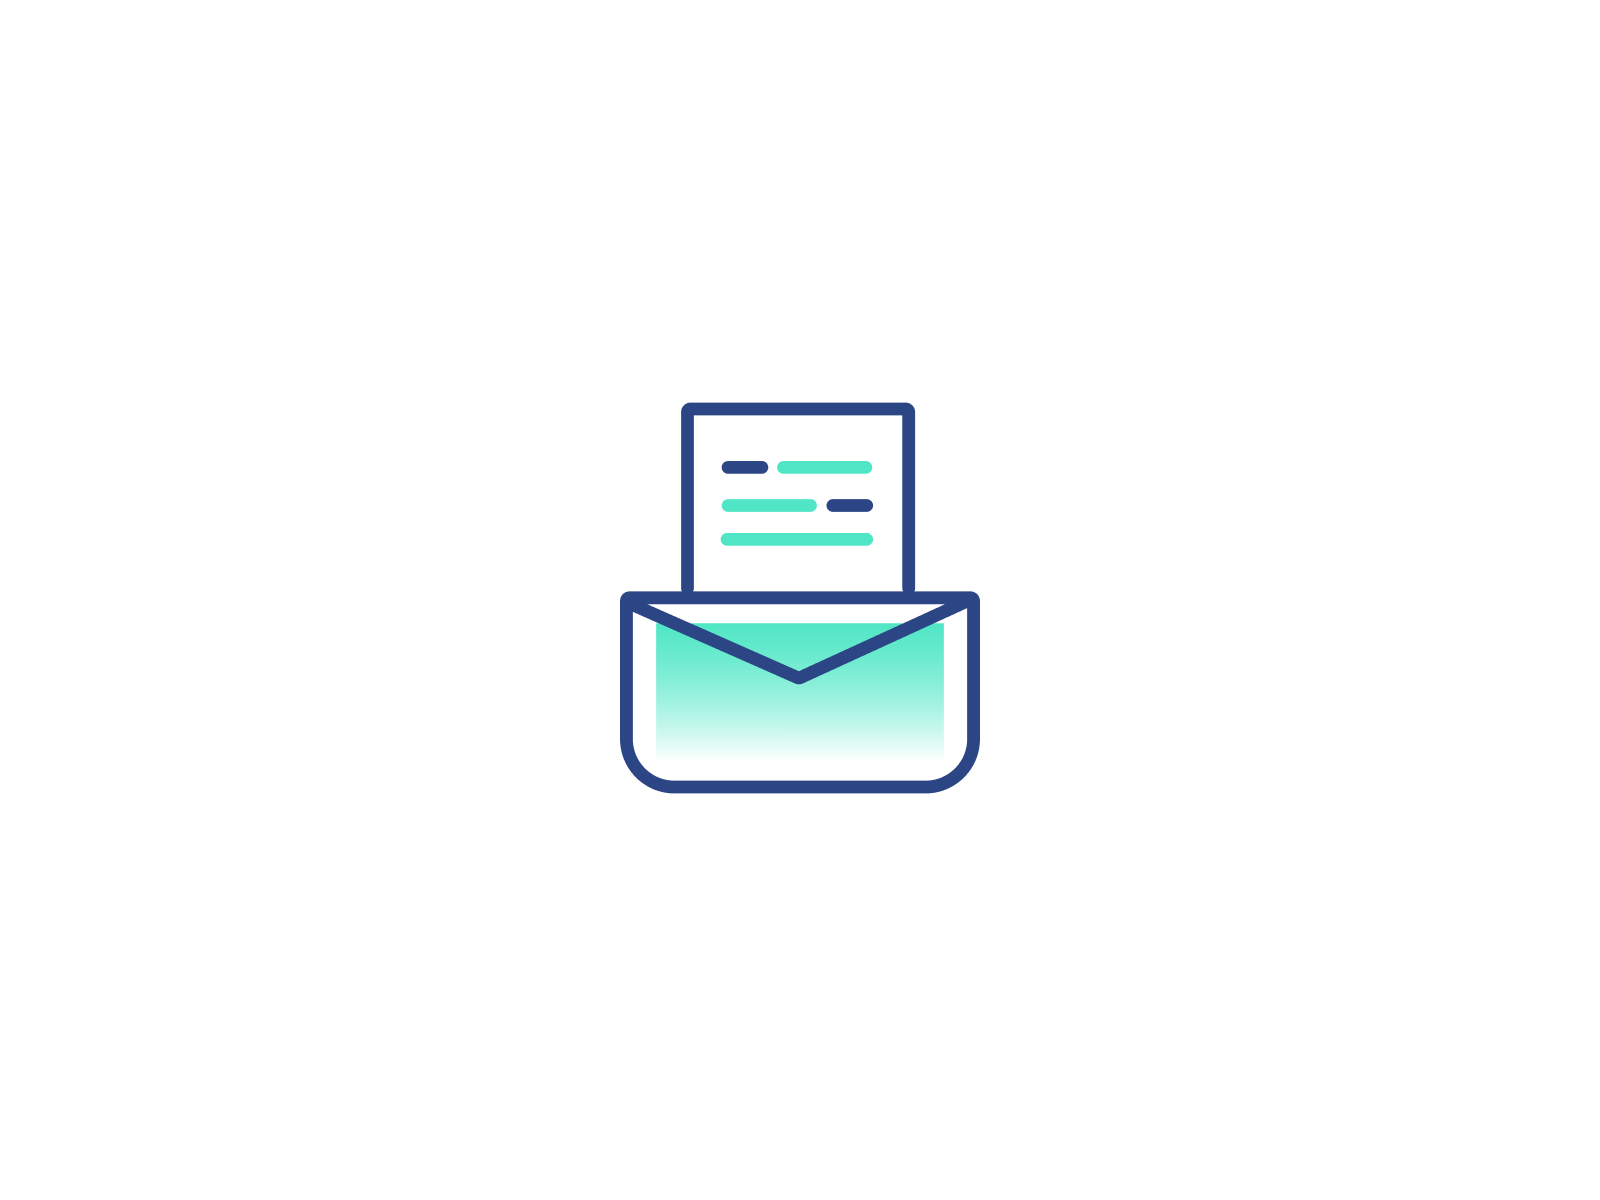 Send Invoice Icon By Rachel Li On Dribbble